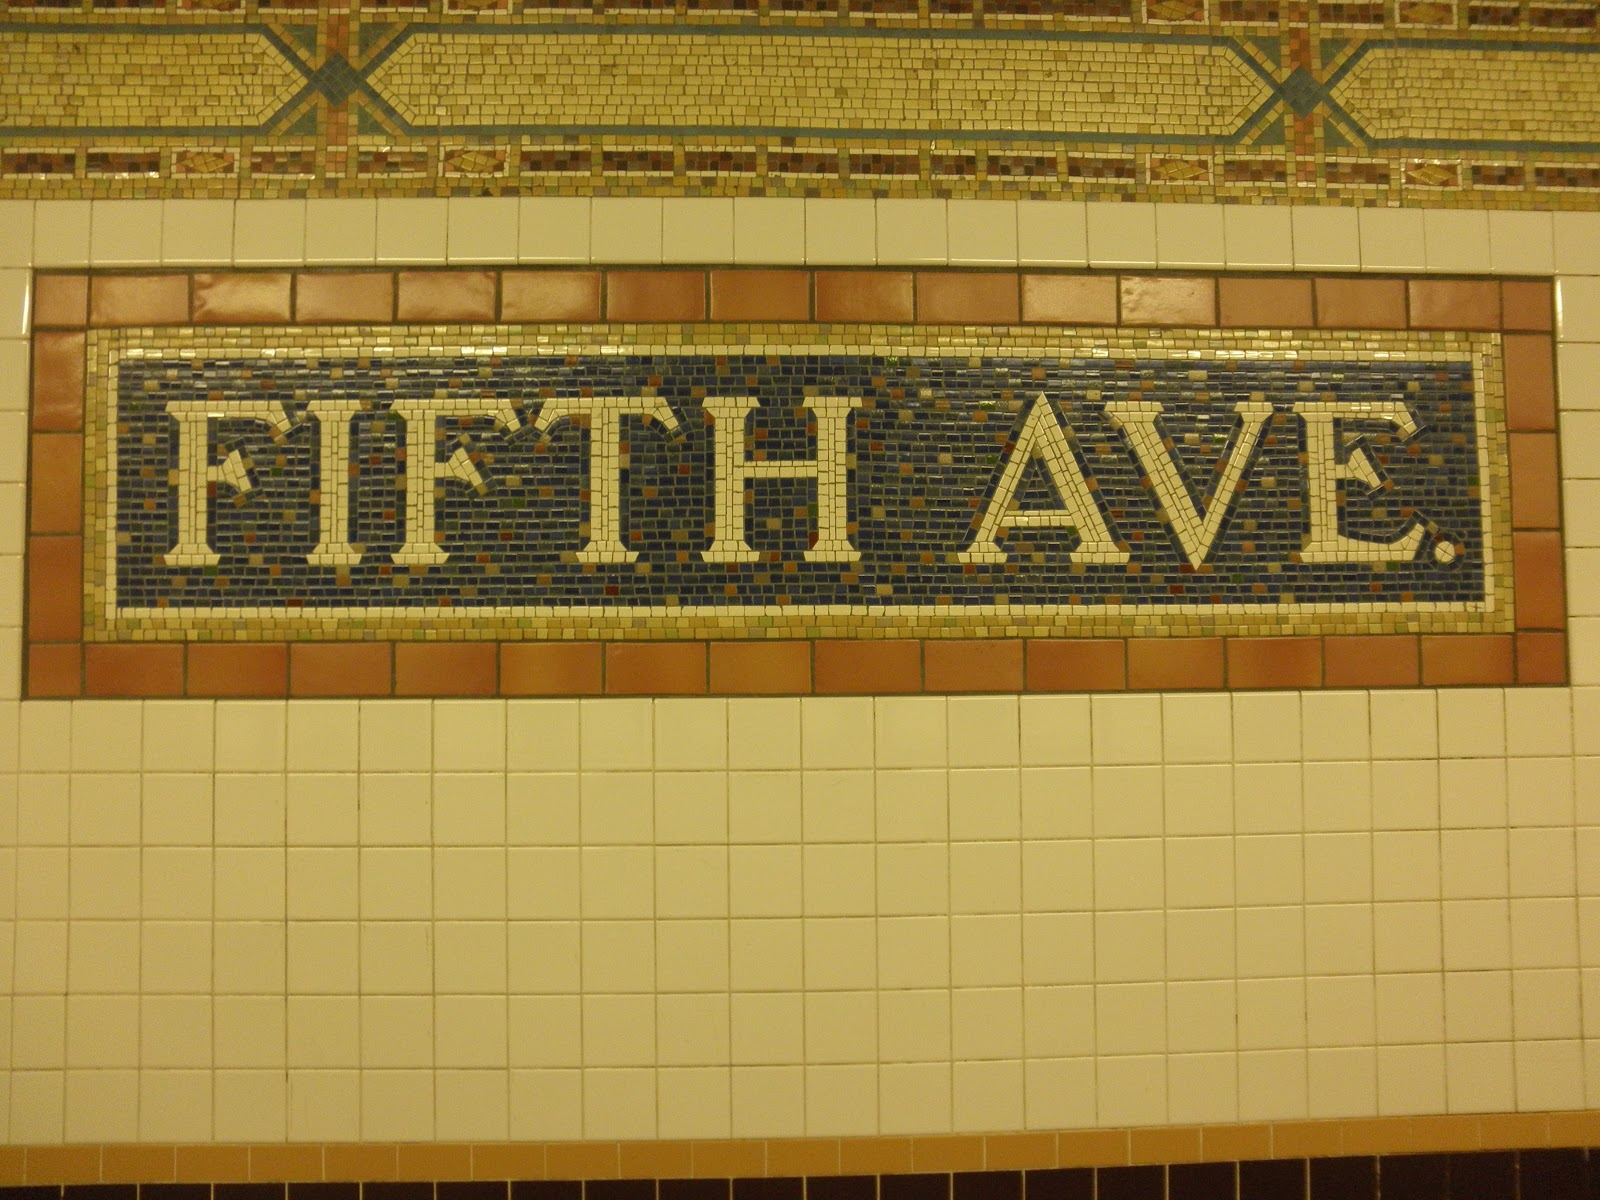 My Walking Pictures: Subway Art at the Fifth Avenue/59th St. Station